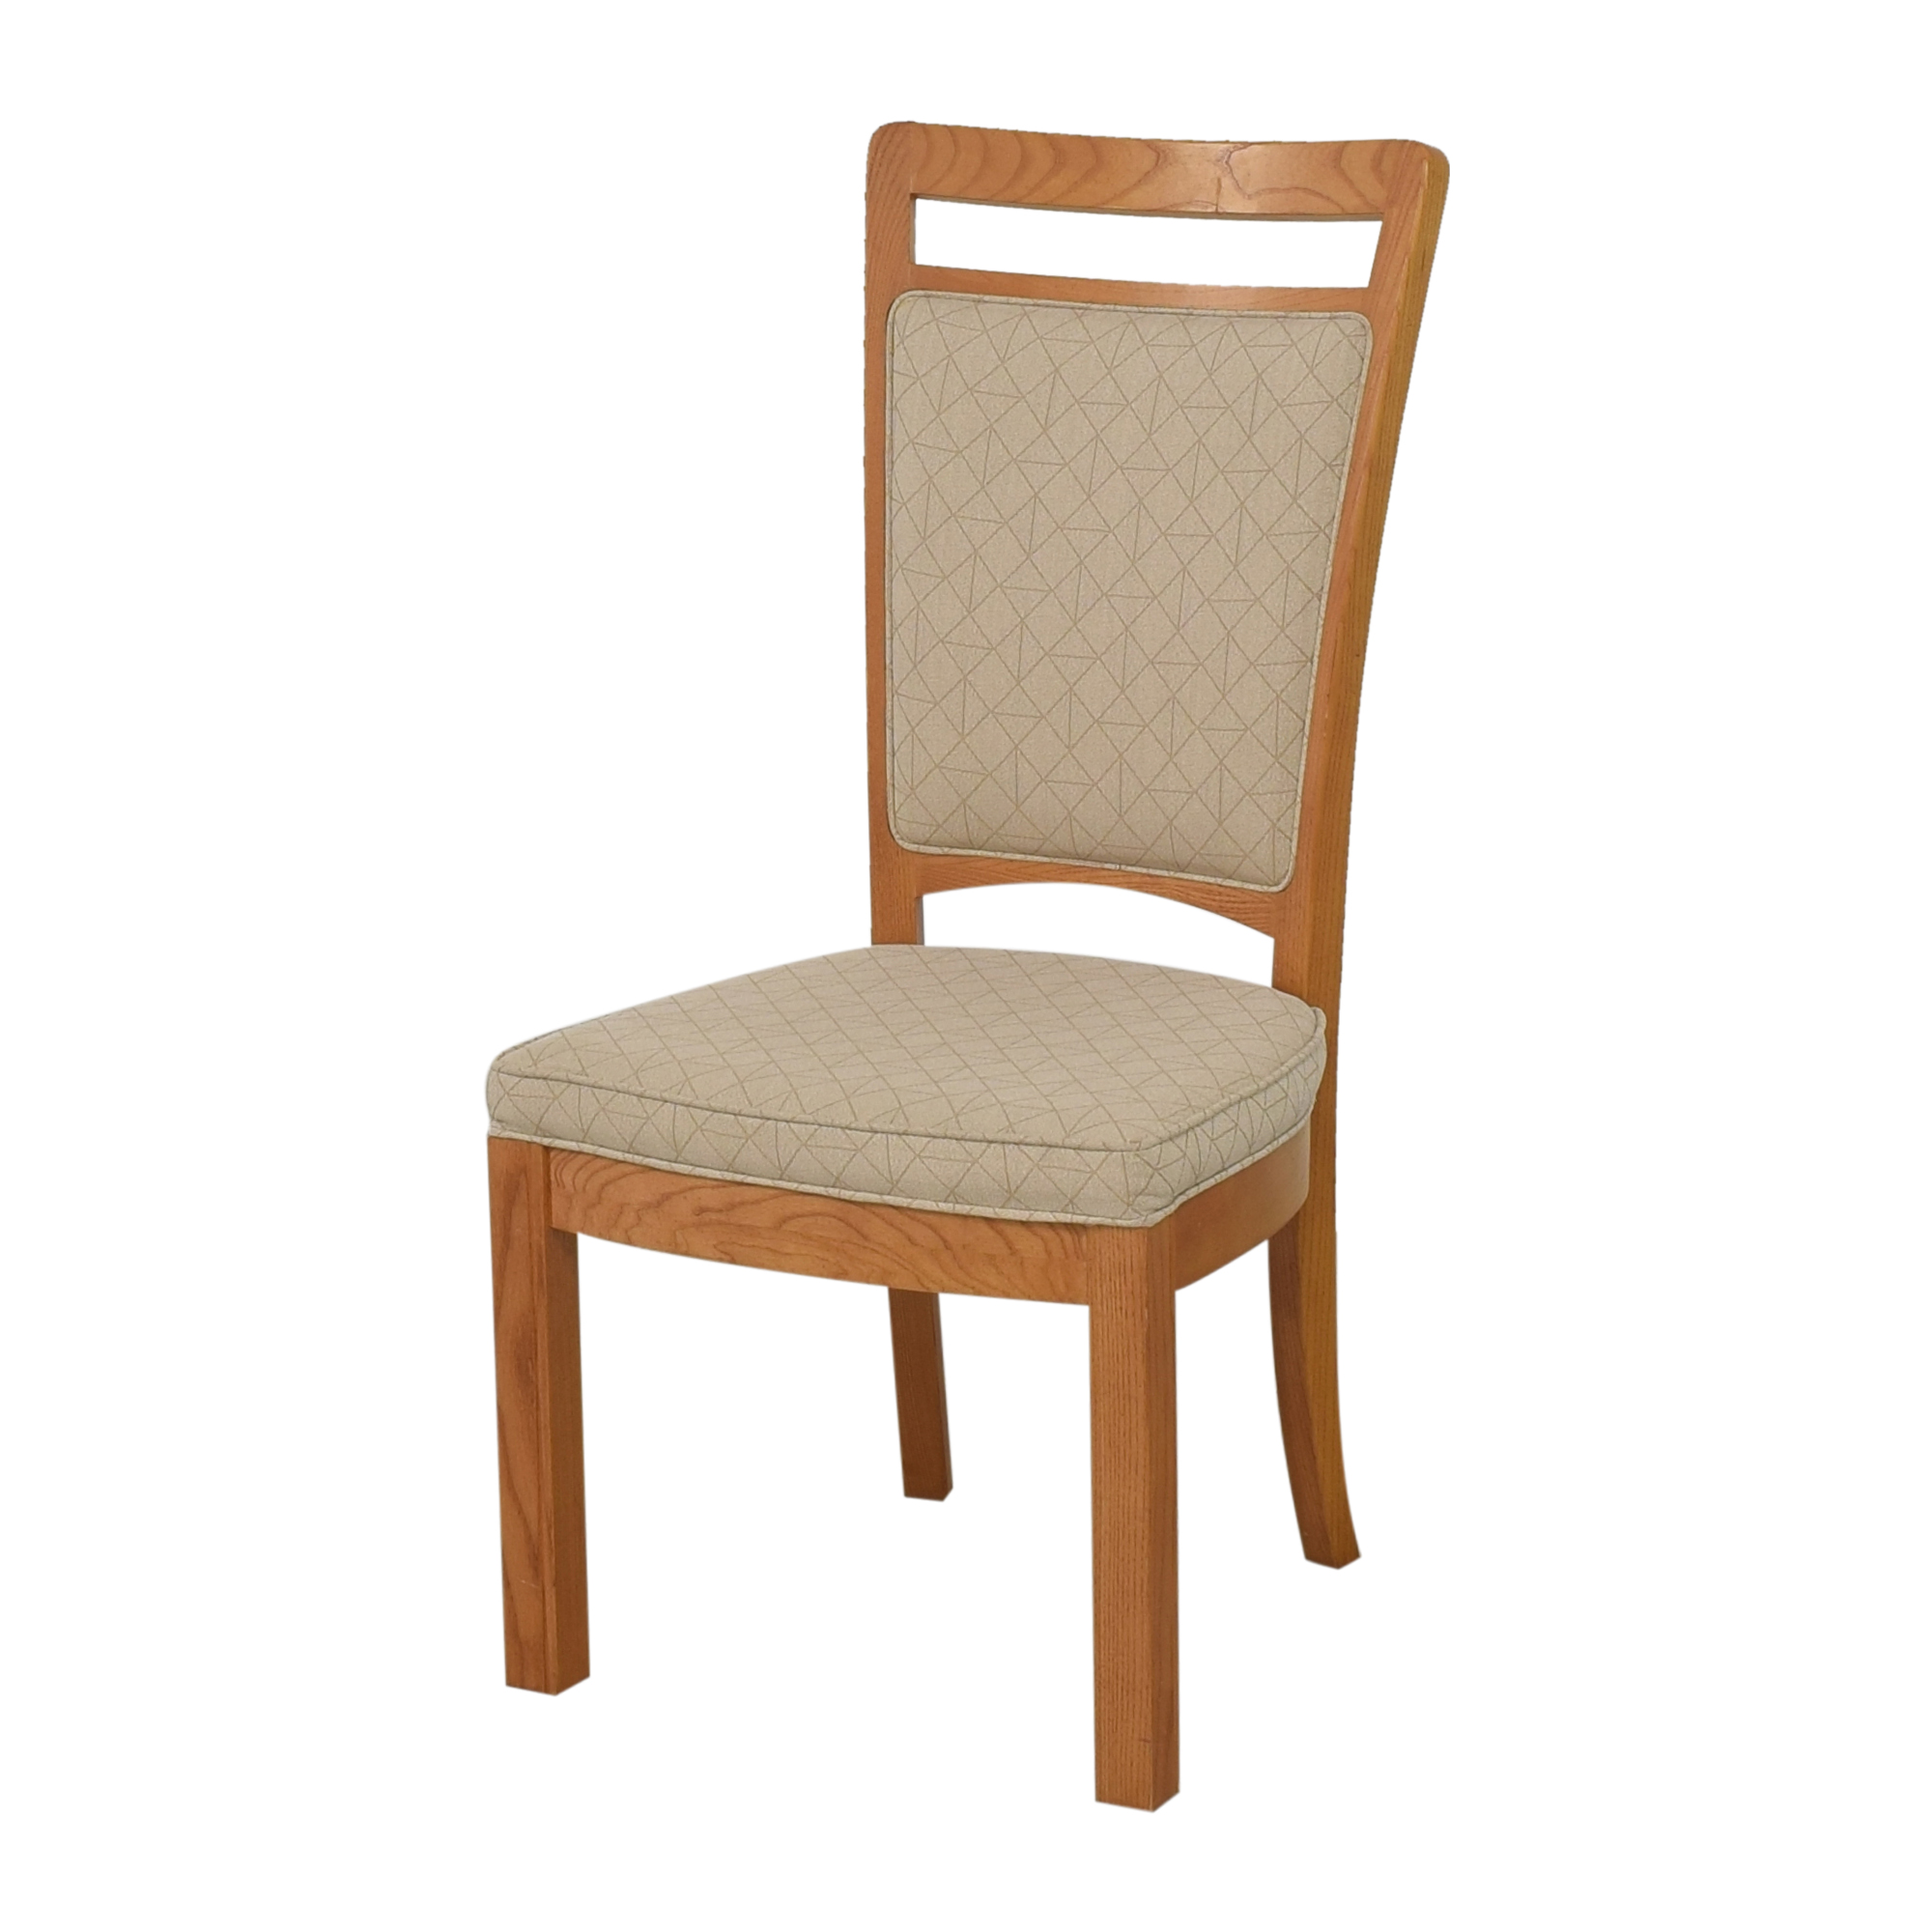 Stanley Furniture Stanley Upholstered Dining Chairs for sale